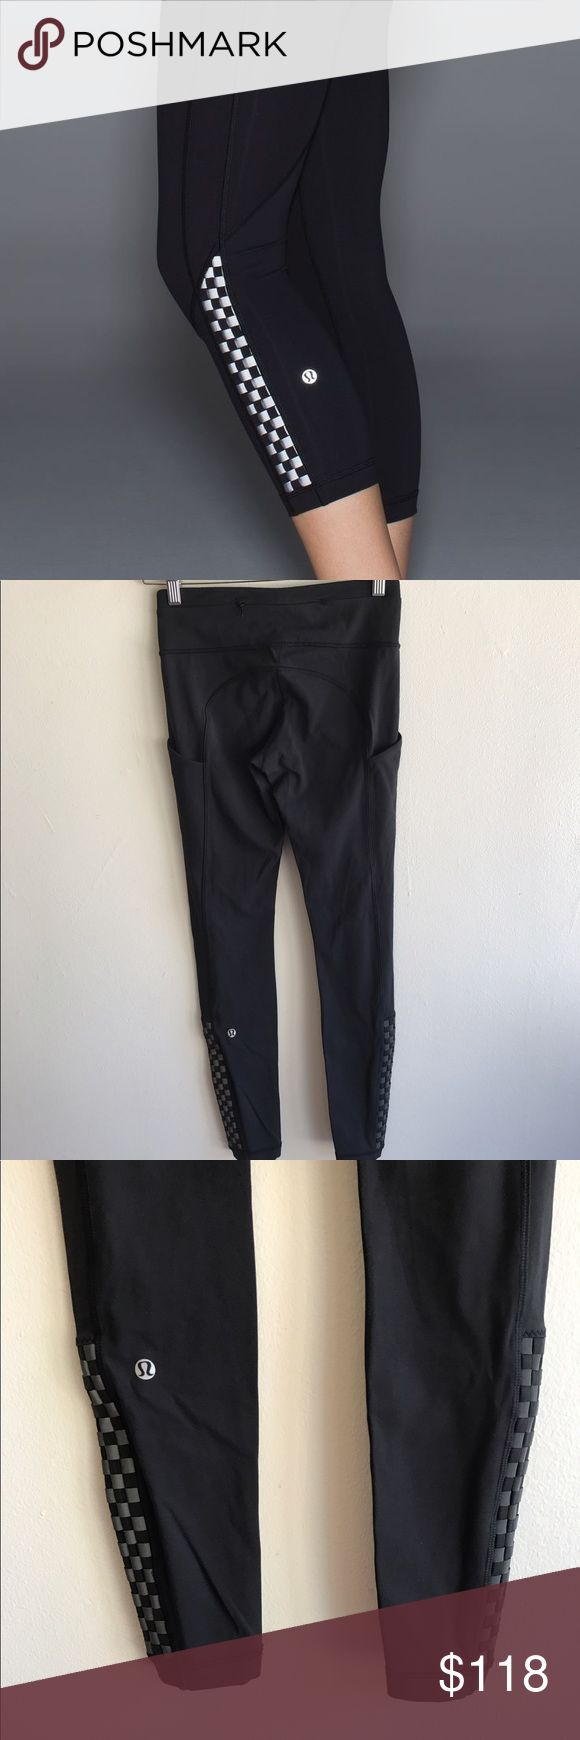 🍋Lululemon Run: Rare Speed Leggings 🔸Lululemon Run: Rare speed Leggings with reflective weaving towards the bottom 🔸Size 4 🔸EUC              Please let me know if you have any questions! 🙂🌺 lululemon athletica Pants Leggings